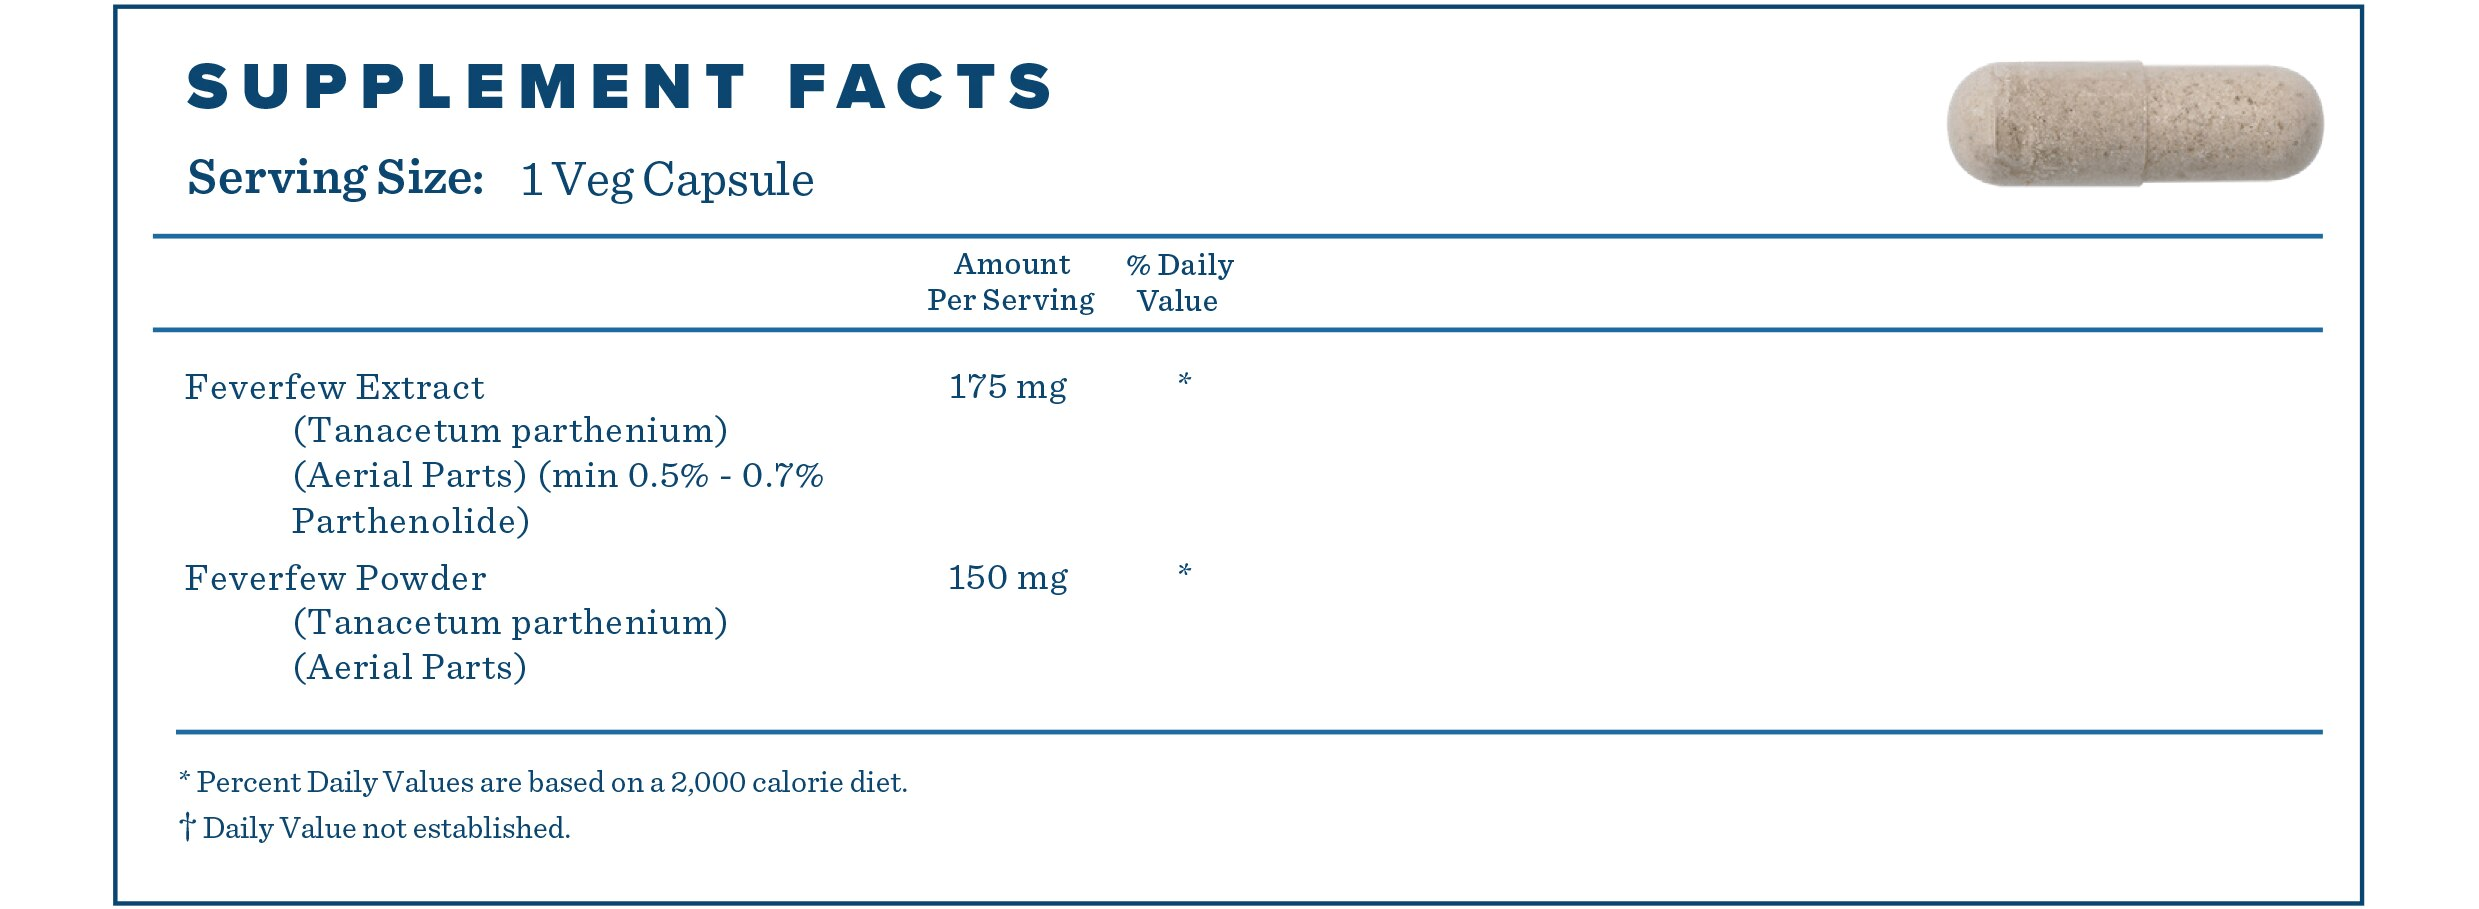 Supplement Facts for Feverfew